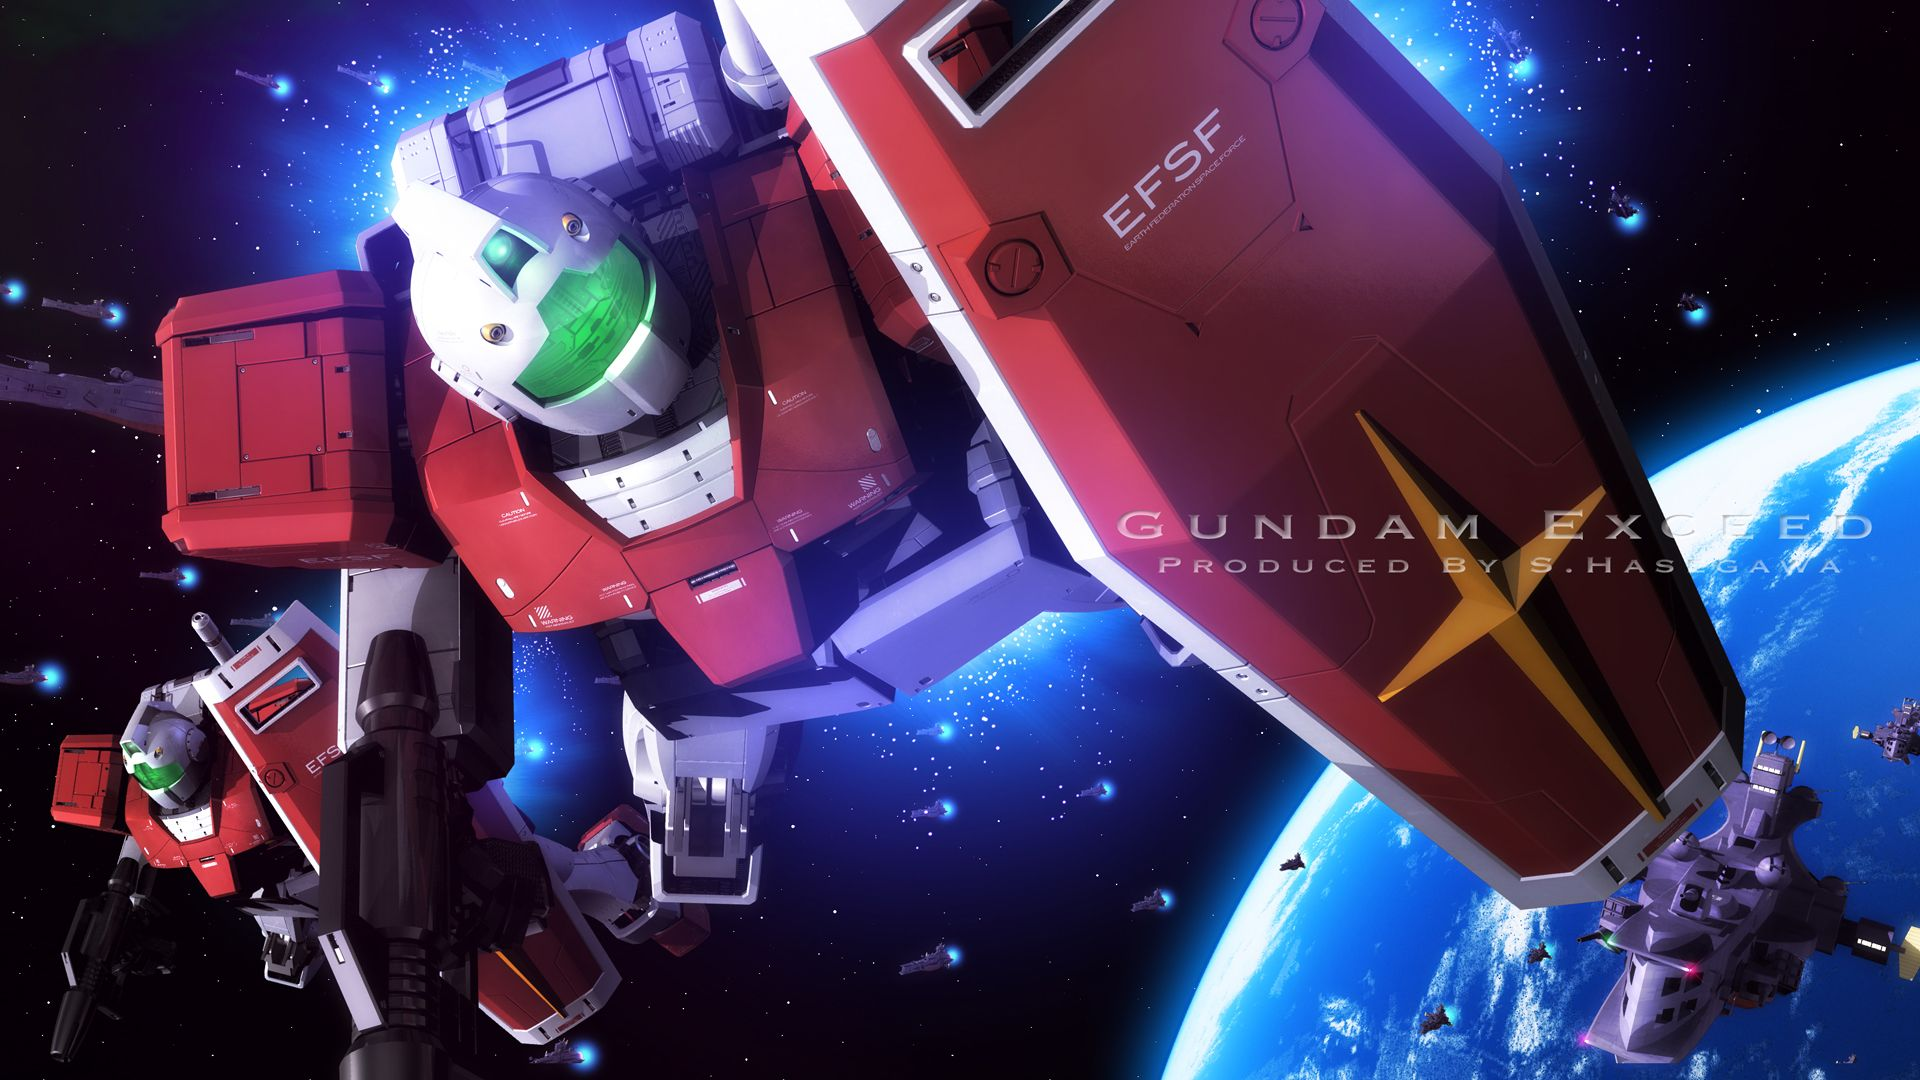 Pin By Seungh Lim On Rgm79 Eff S Ms Series Gundam Digital Artwork Gundam Art